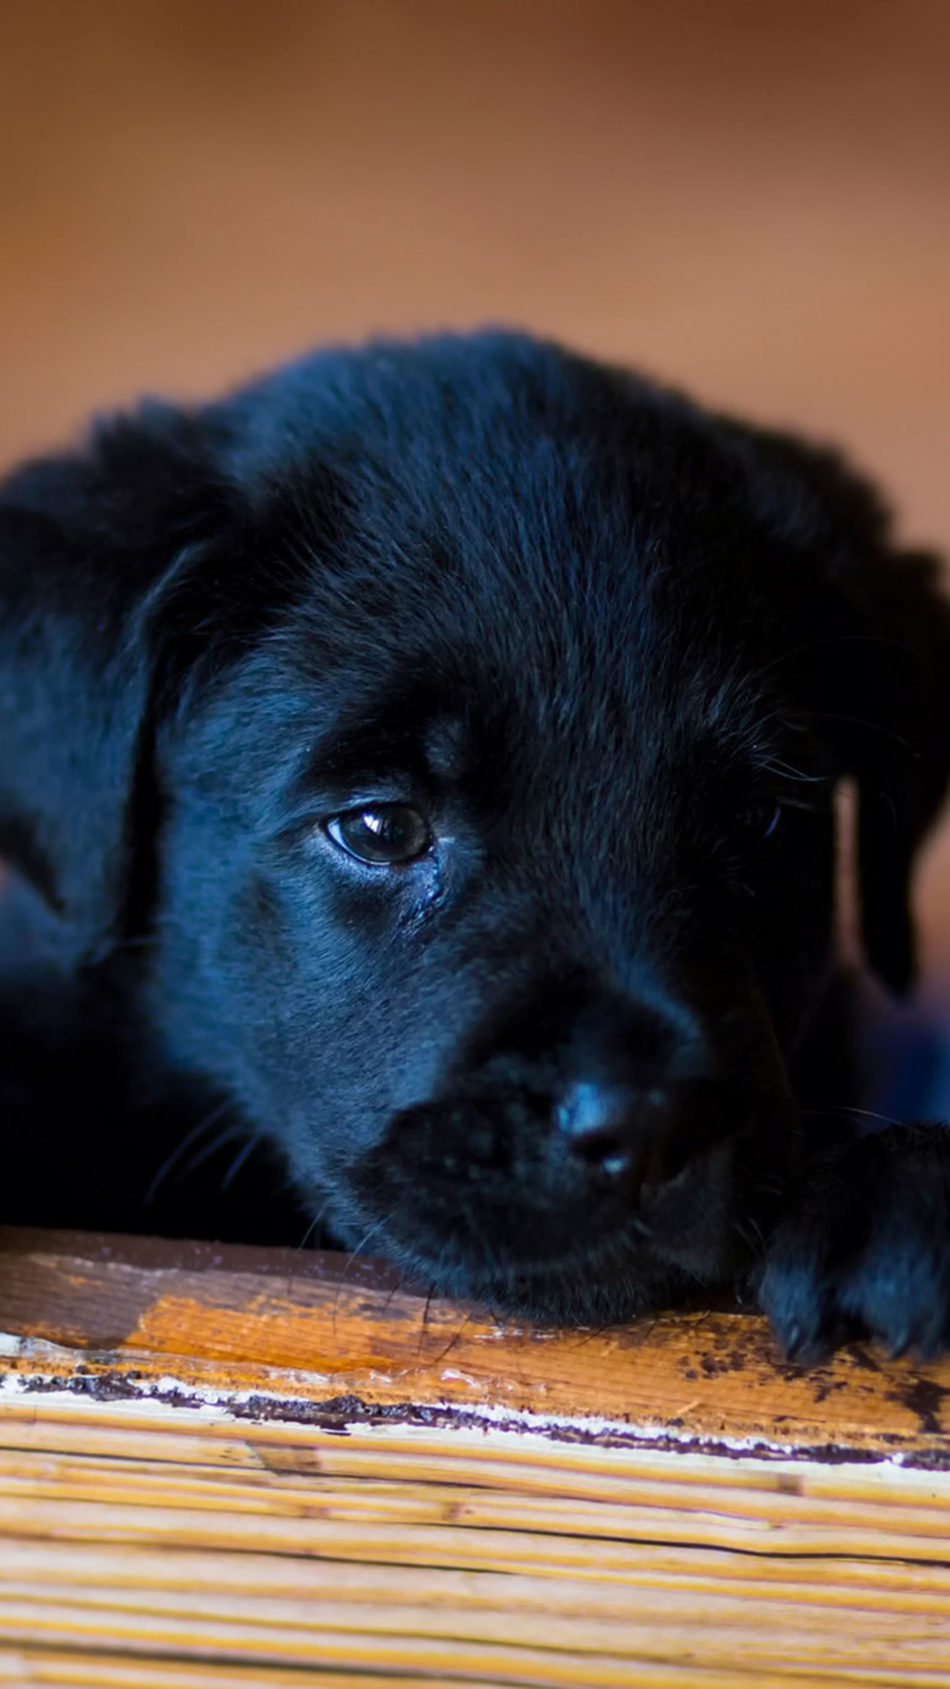 Puppy Labrador Sad Look 4K Ultra HD Mobile Wallpaper